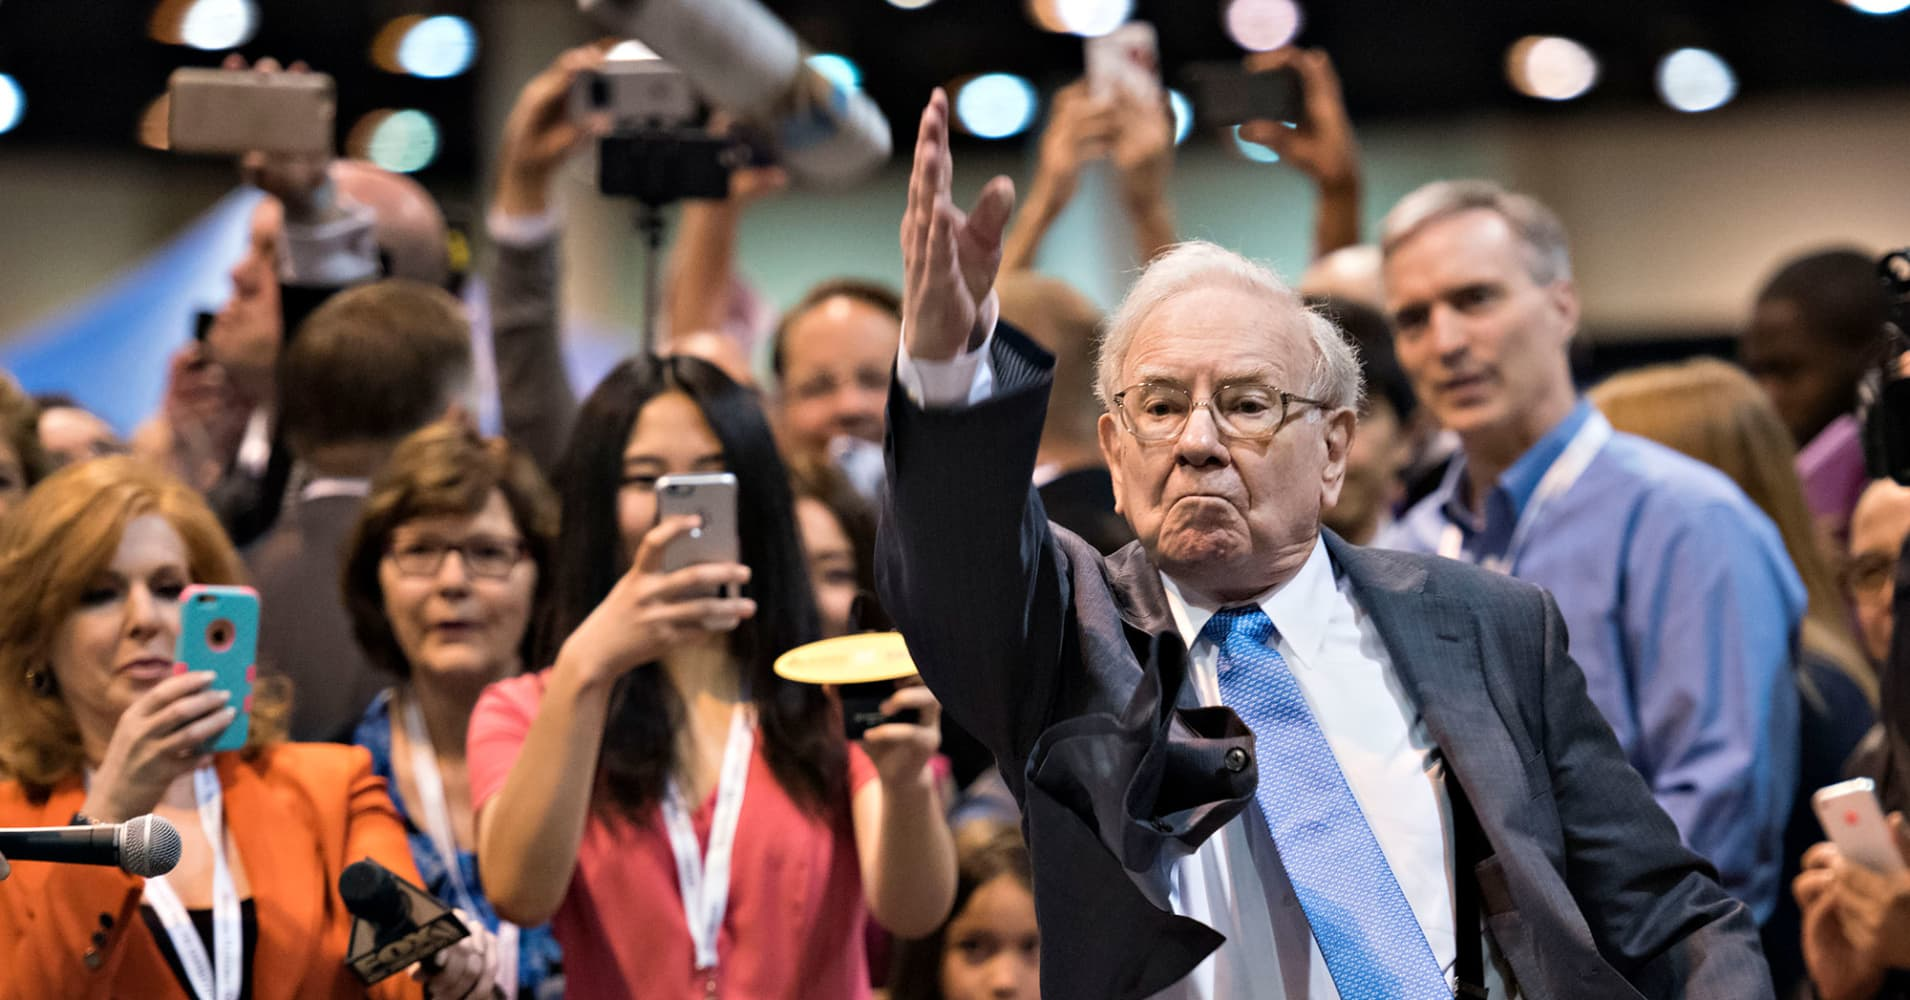 There are still great buying opportunities in this 'Buffett bounce': Money manager